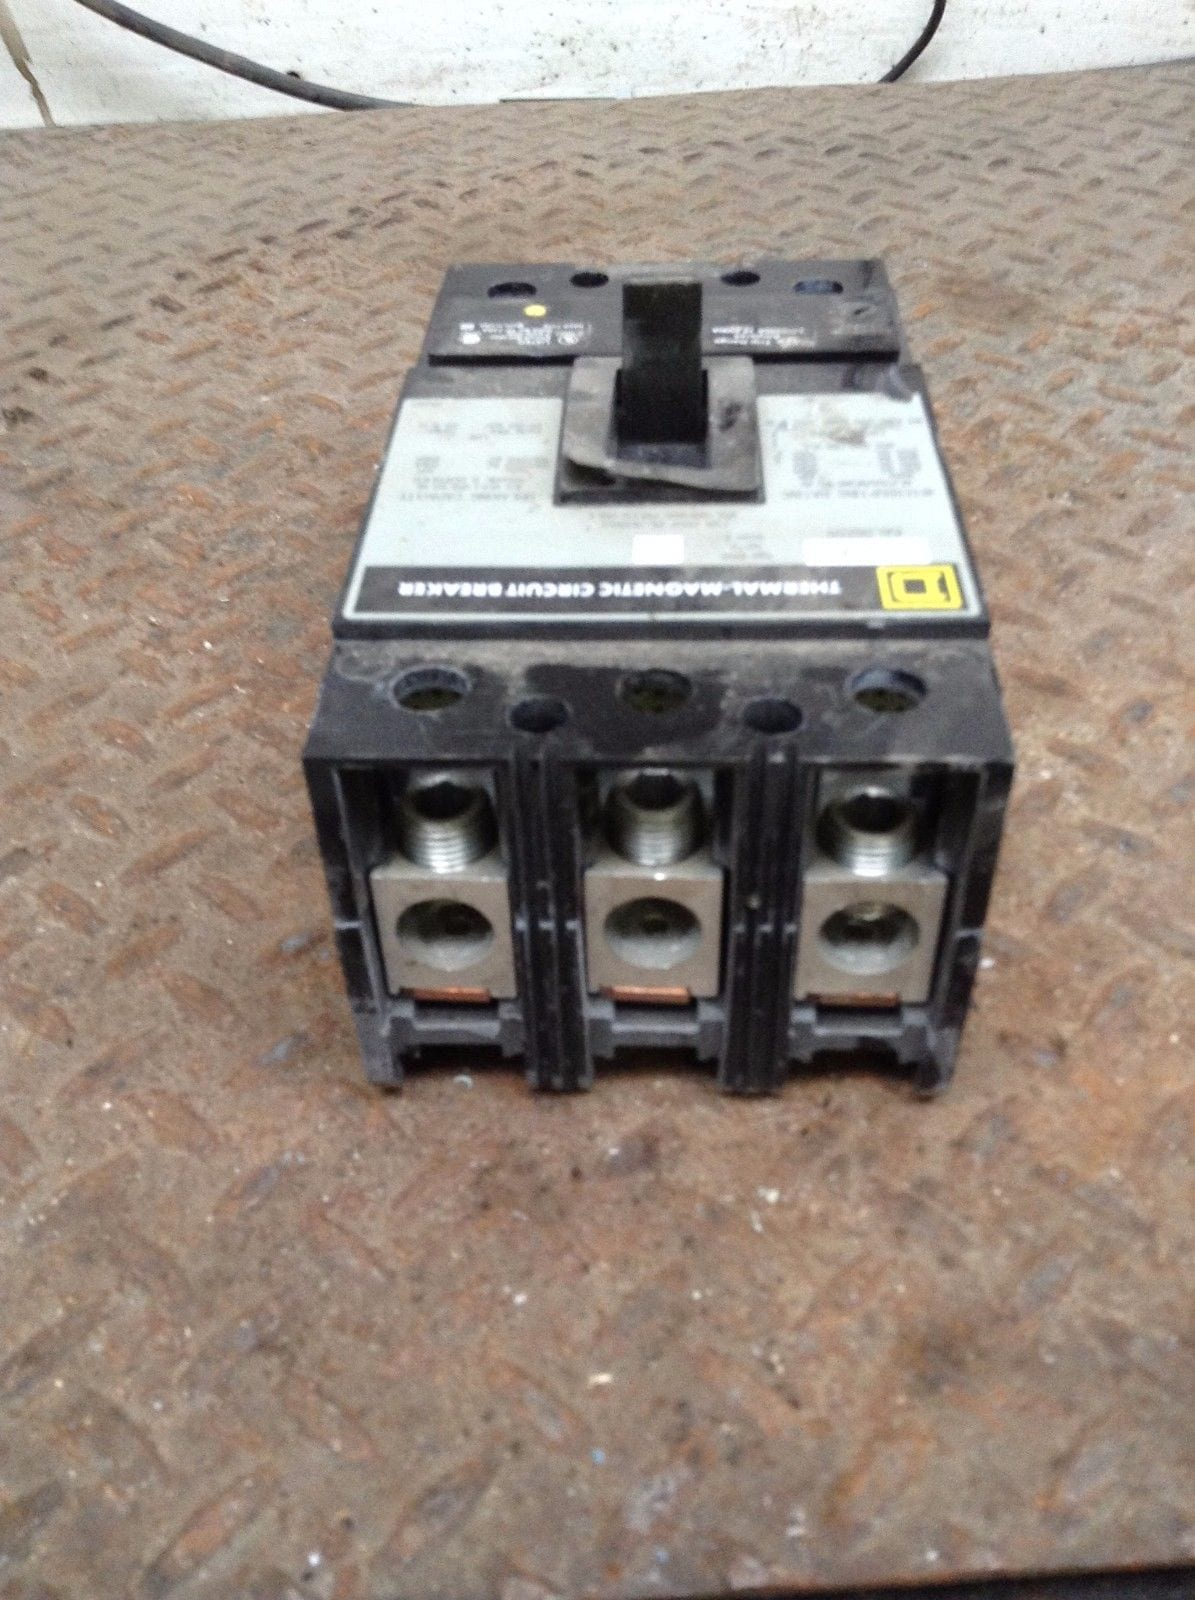 Square D 3p Thermal Magnetic Circuit Breaker Mccb 250a 600v Moses Breakers Some Use A